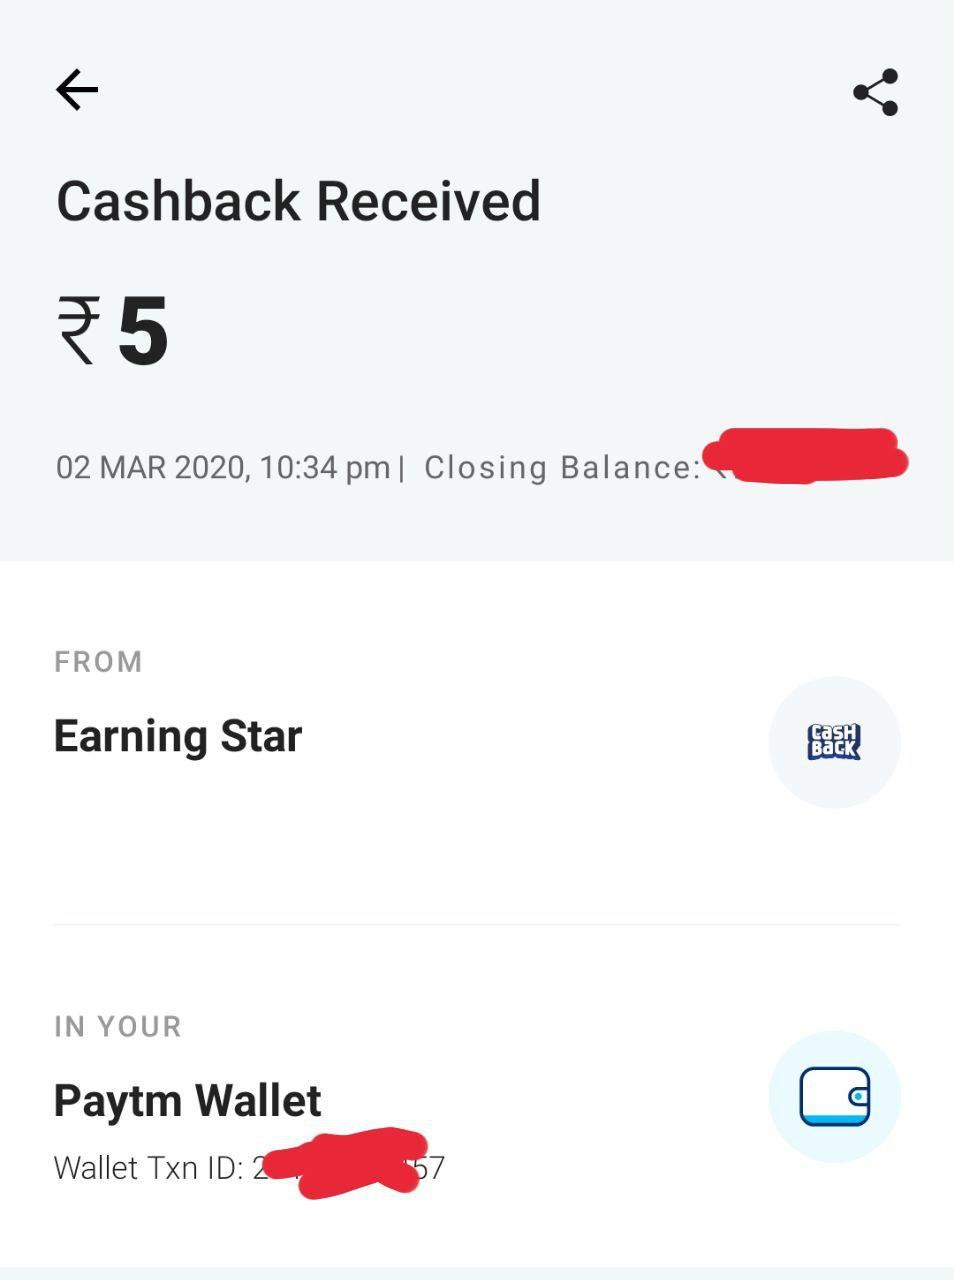 Over 5 Free Paytm Cash Instantly From Spin To Earn App